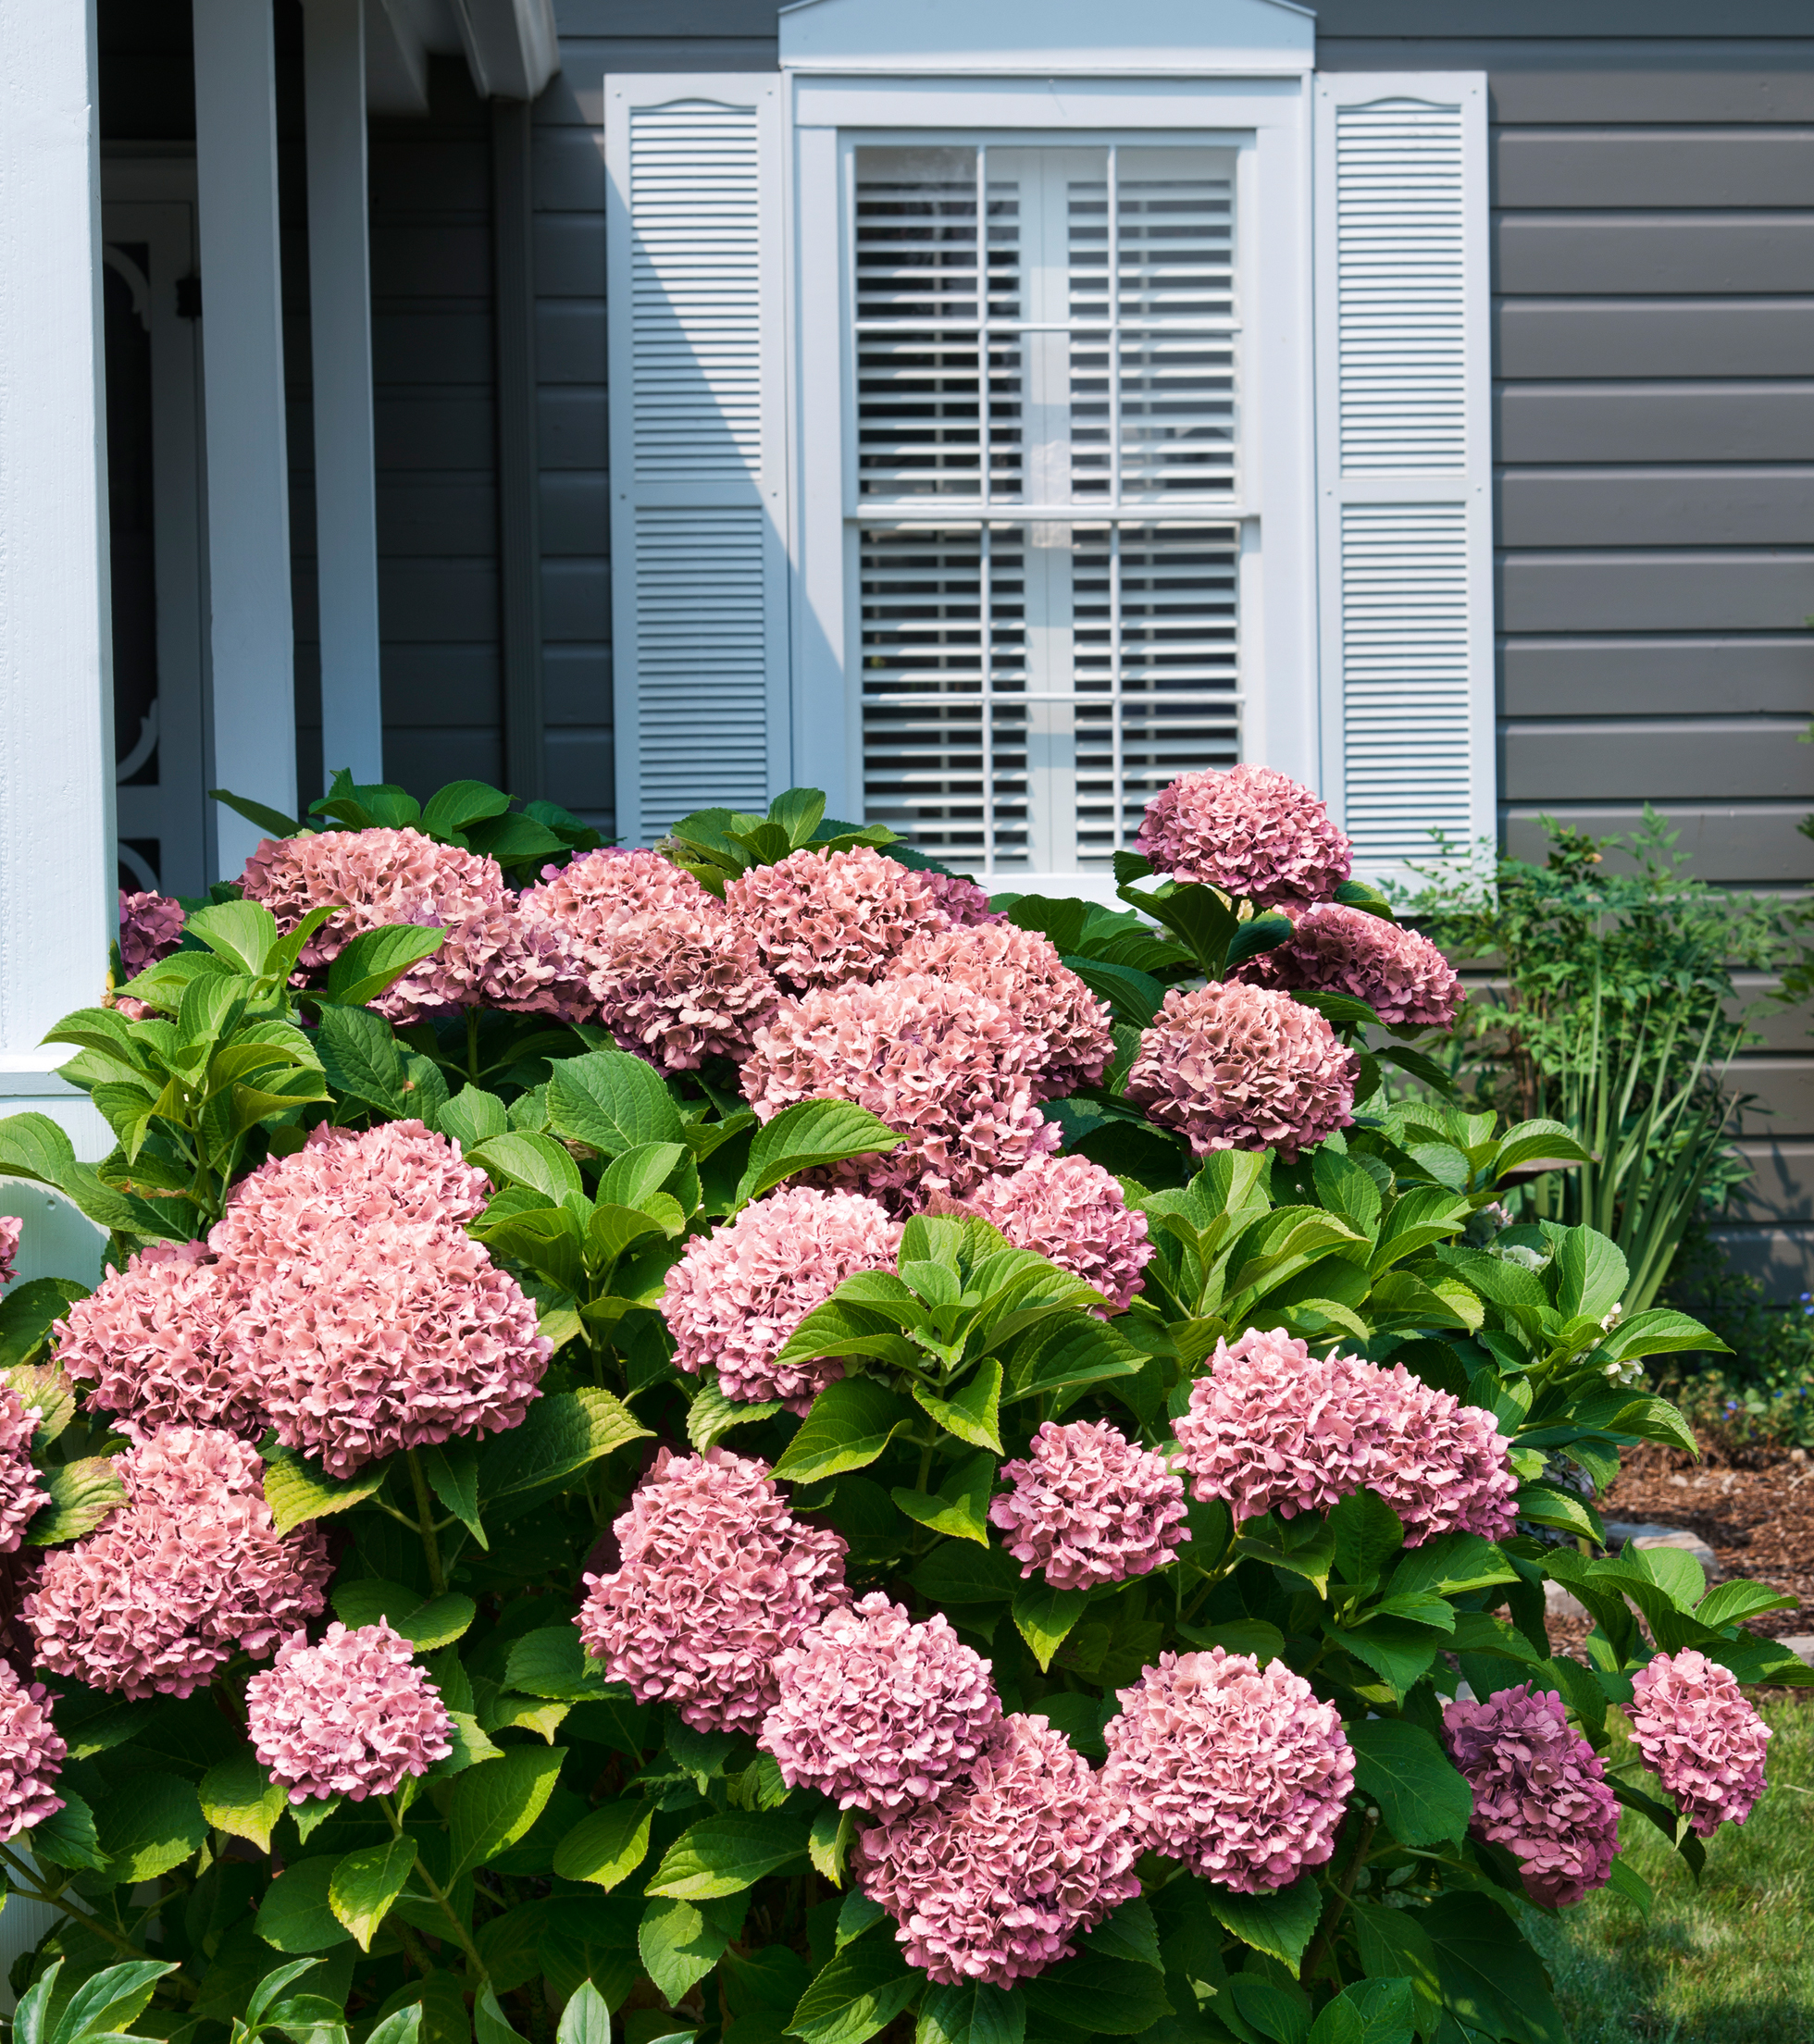 Prevent fires with fire-resistant plants like hydrange